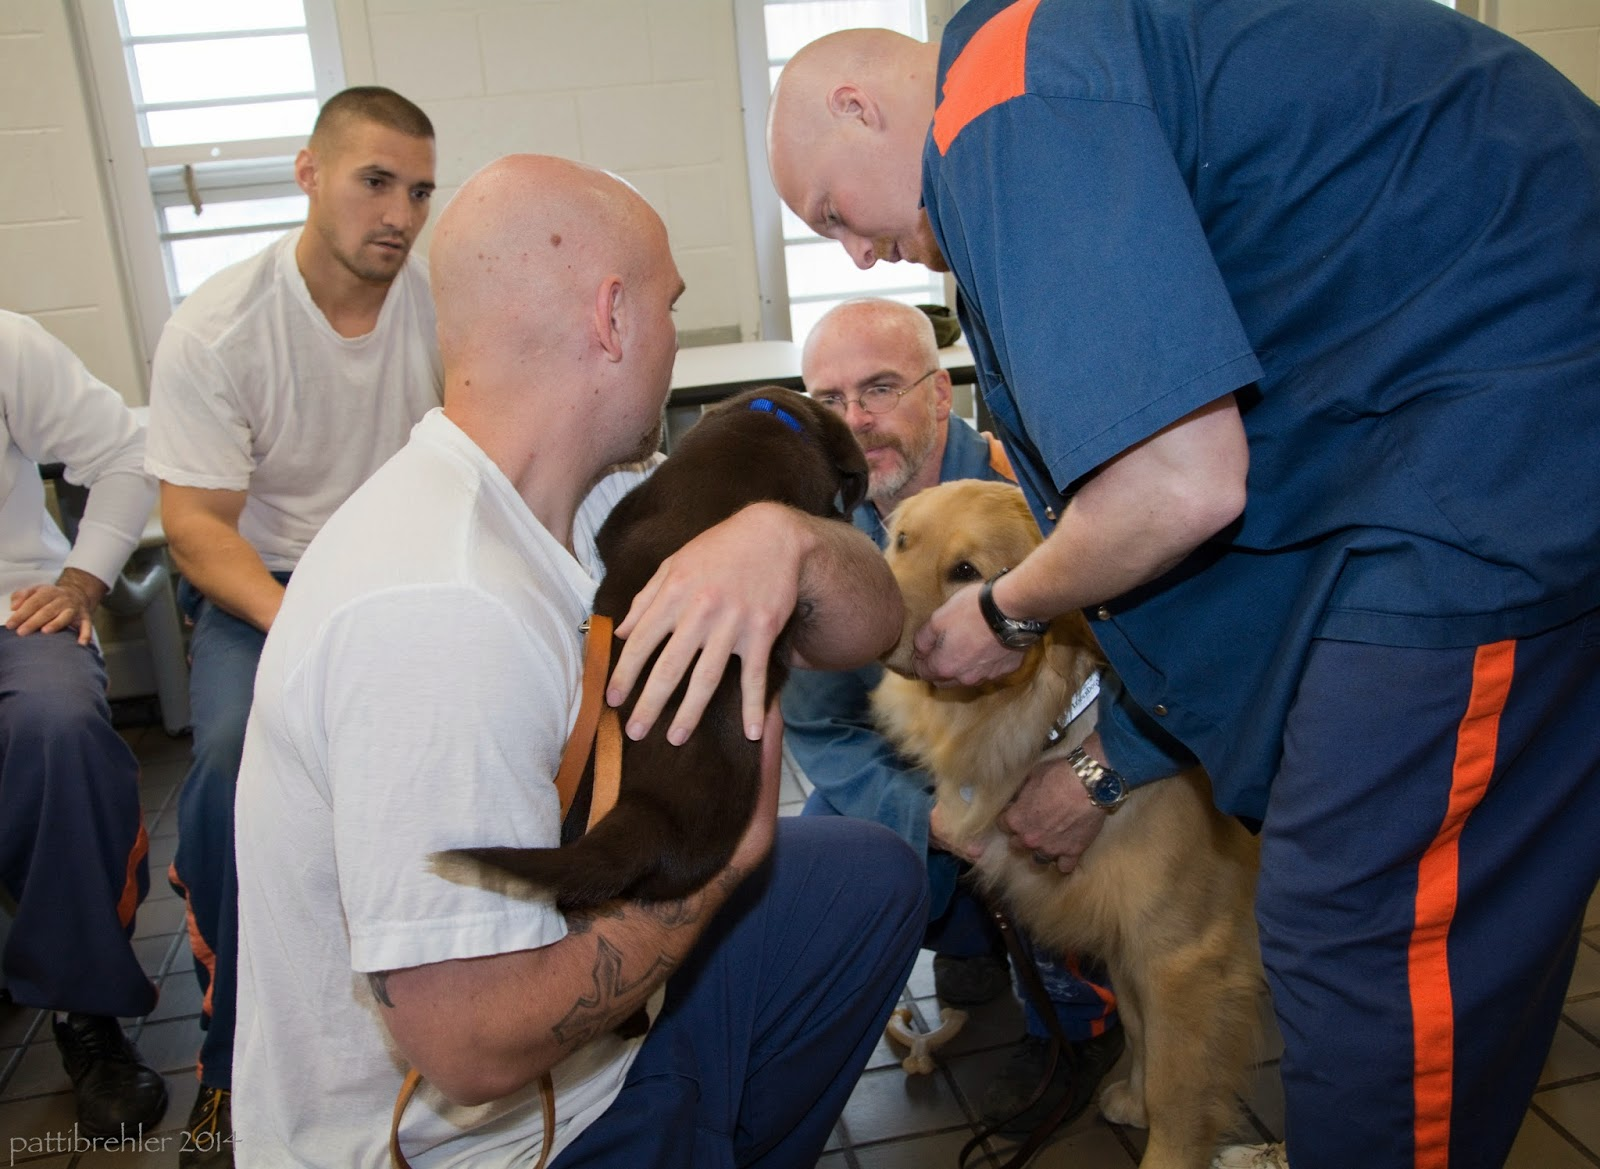 The bald man in the white t-shirt is holding the chocolate lab puppy and facing away from the camera, and squatting down to have the puppy meet a large golden retriever that is sitting on the tile floor. A man wearing the prison blue and orange uniform is standing up and bending over to look at the puppy on the right side. Another man in the background between them is squatting down, only his face is visible. A fourth man is sitting in the background to the left, looking at the puppy. He is also wearing a white t-shirt.